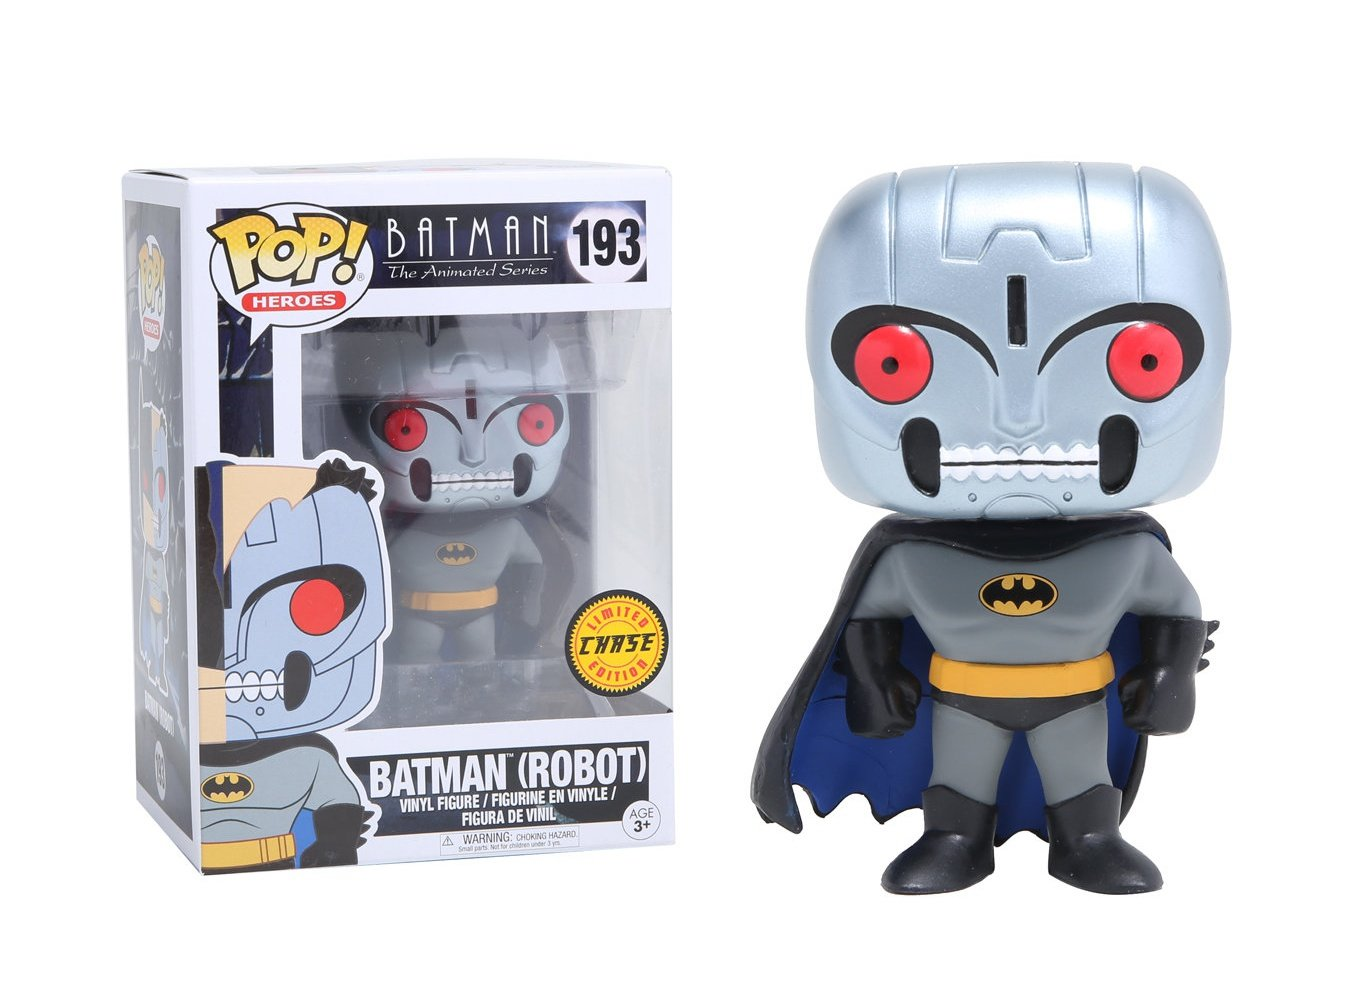 Funko Pop Vinyl Batman The Animated Series Robot Batman Chase Variant Figure